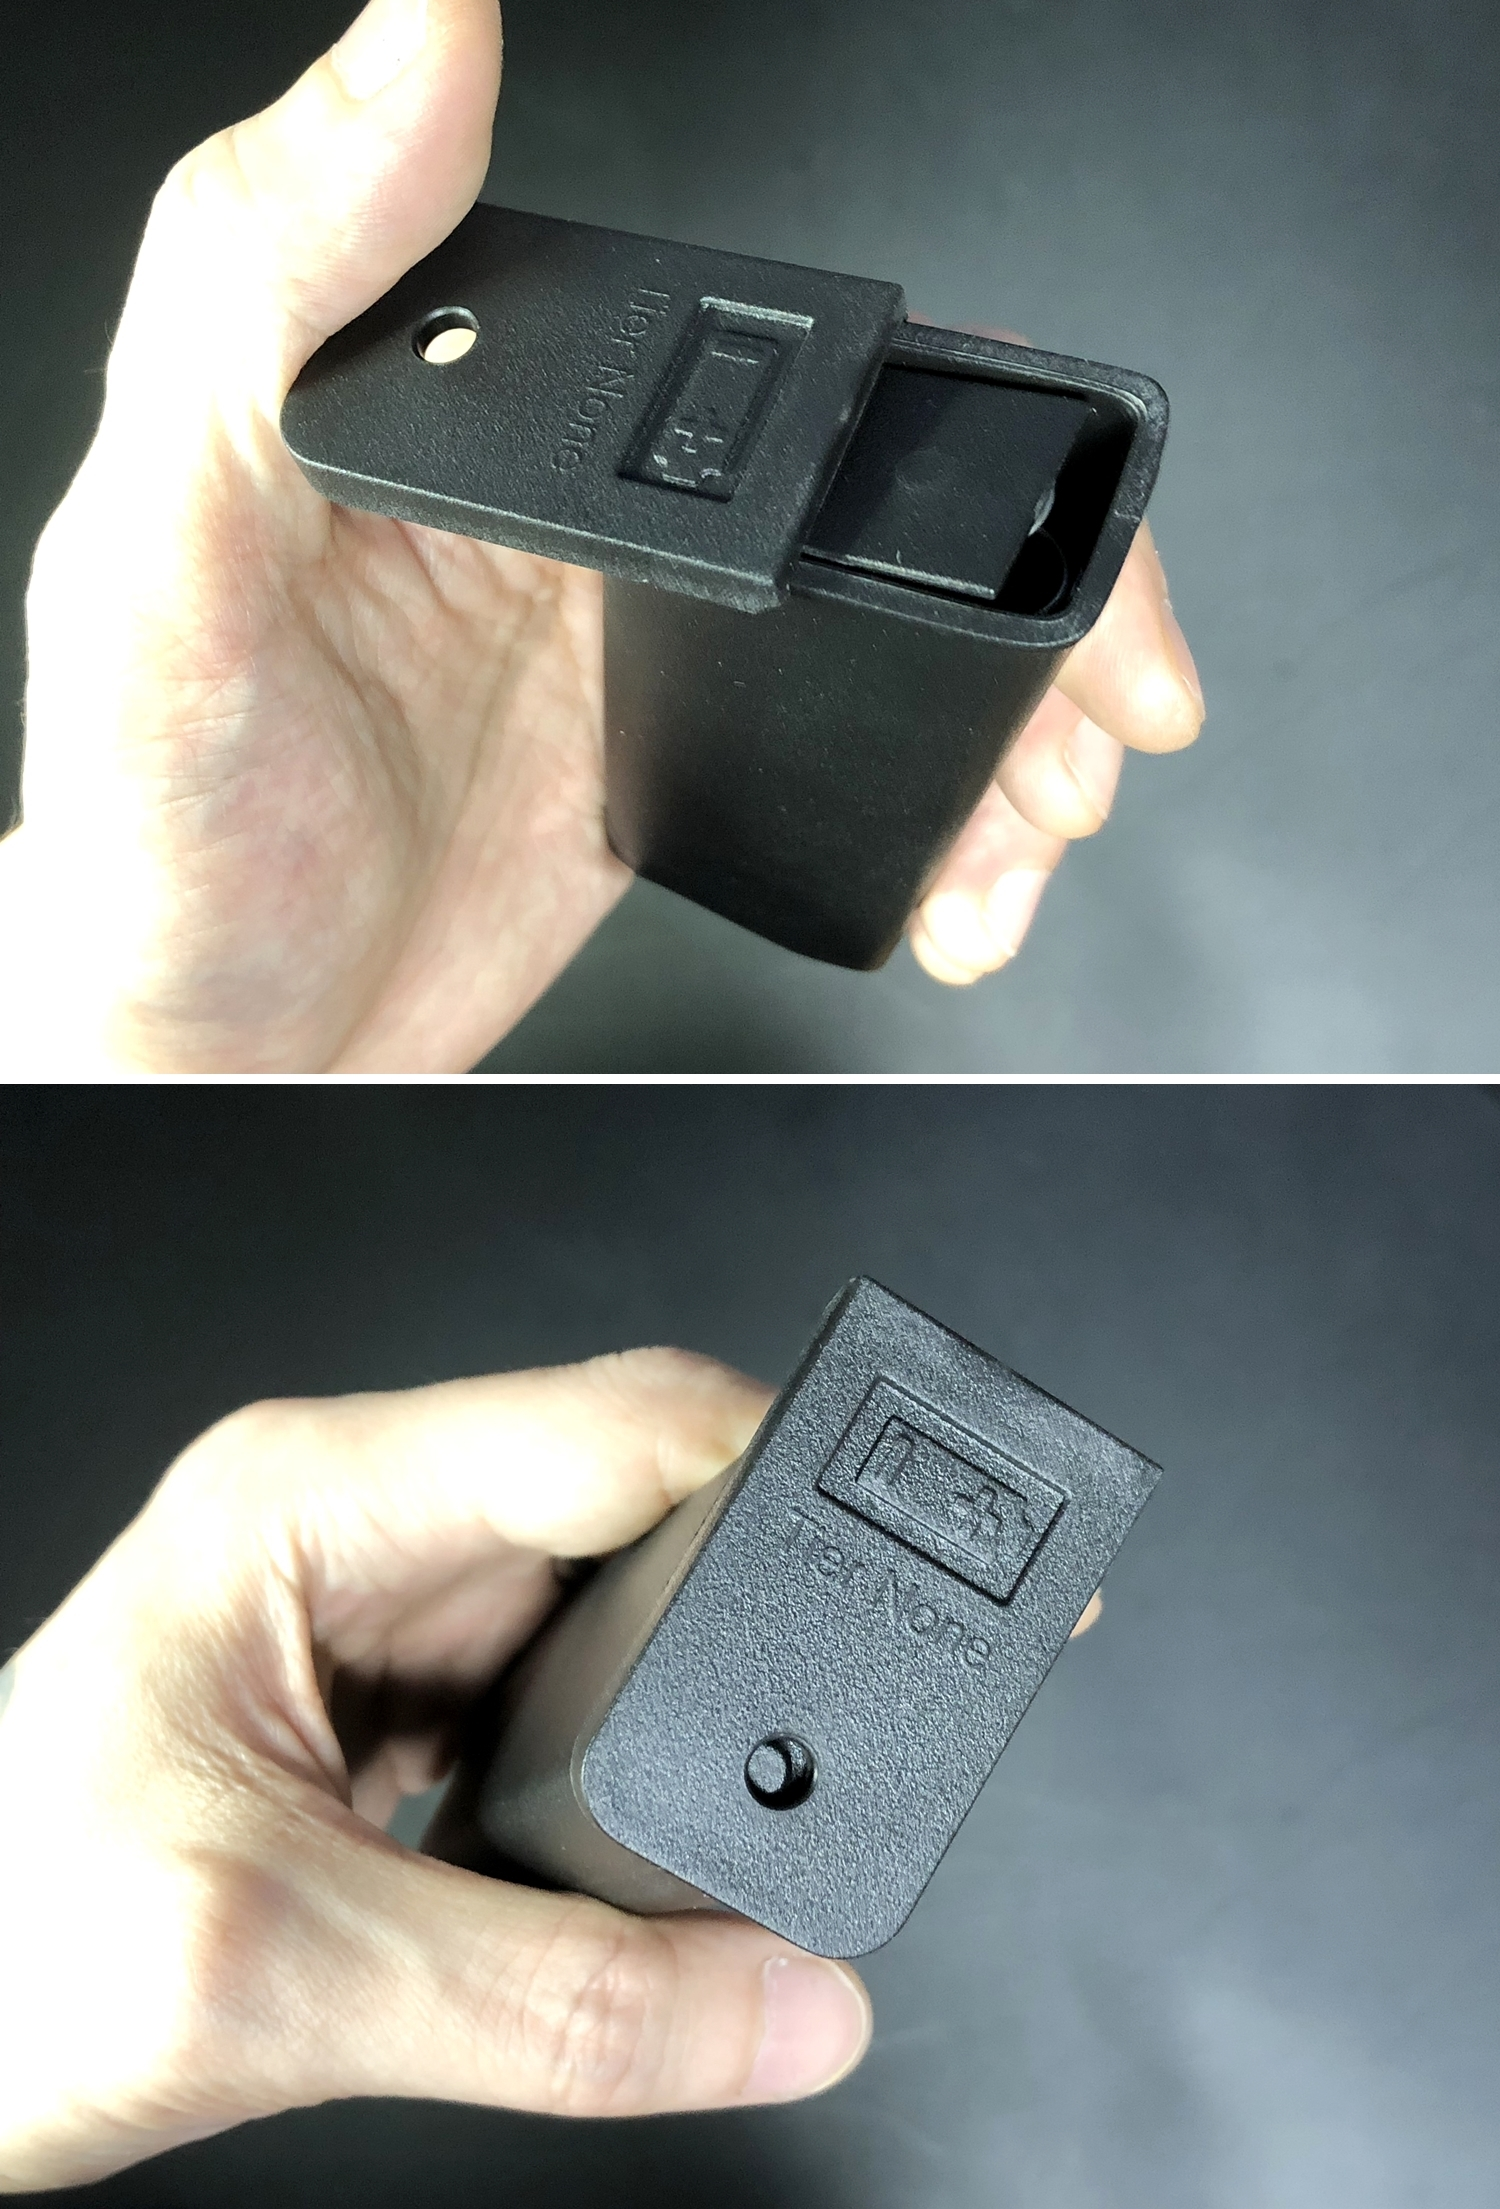 6 TMC GLOCK MAGAZINE STYLE CR123A BATTERY CASE グロック マガジン スタイル 電池ケース SUREFIRE SF123A 純正電池!! 購入 開封 取付 レビュー!!